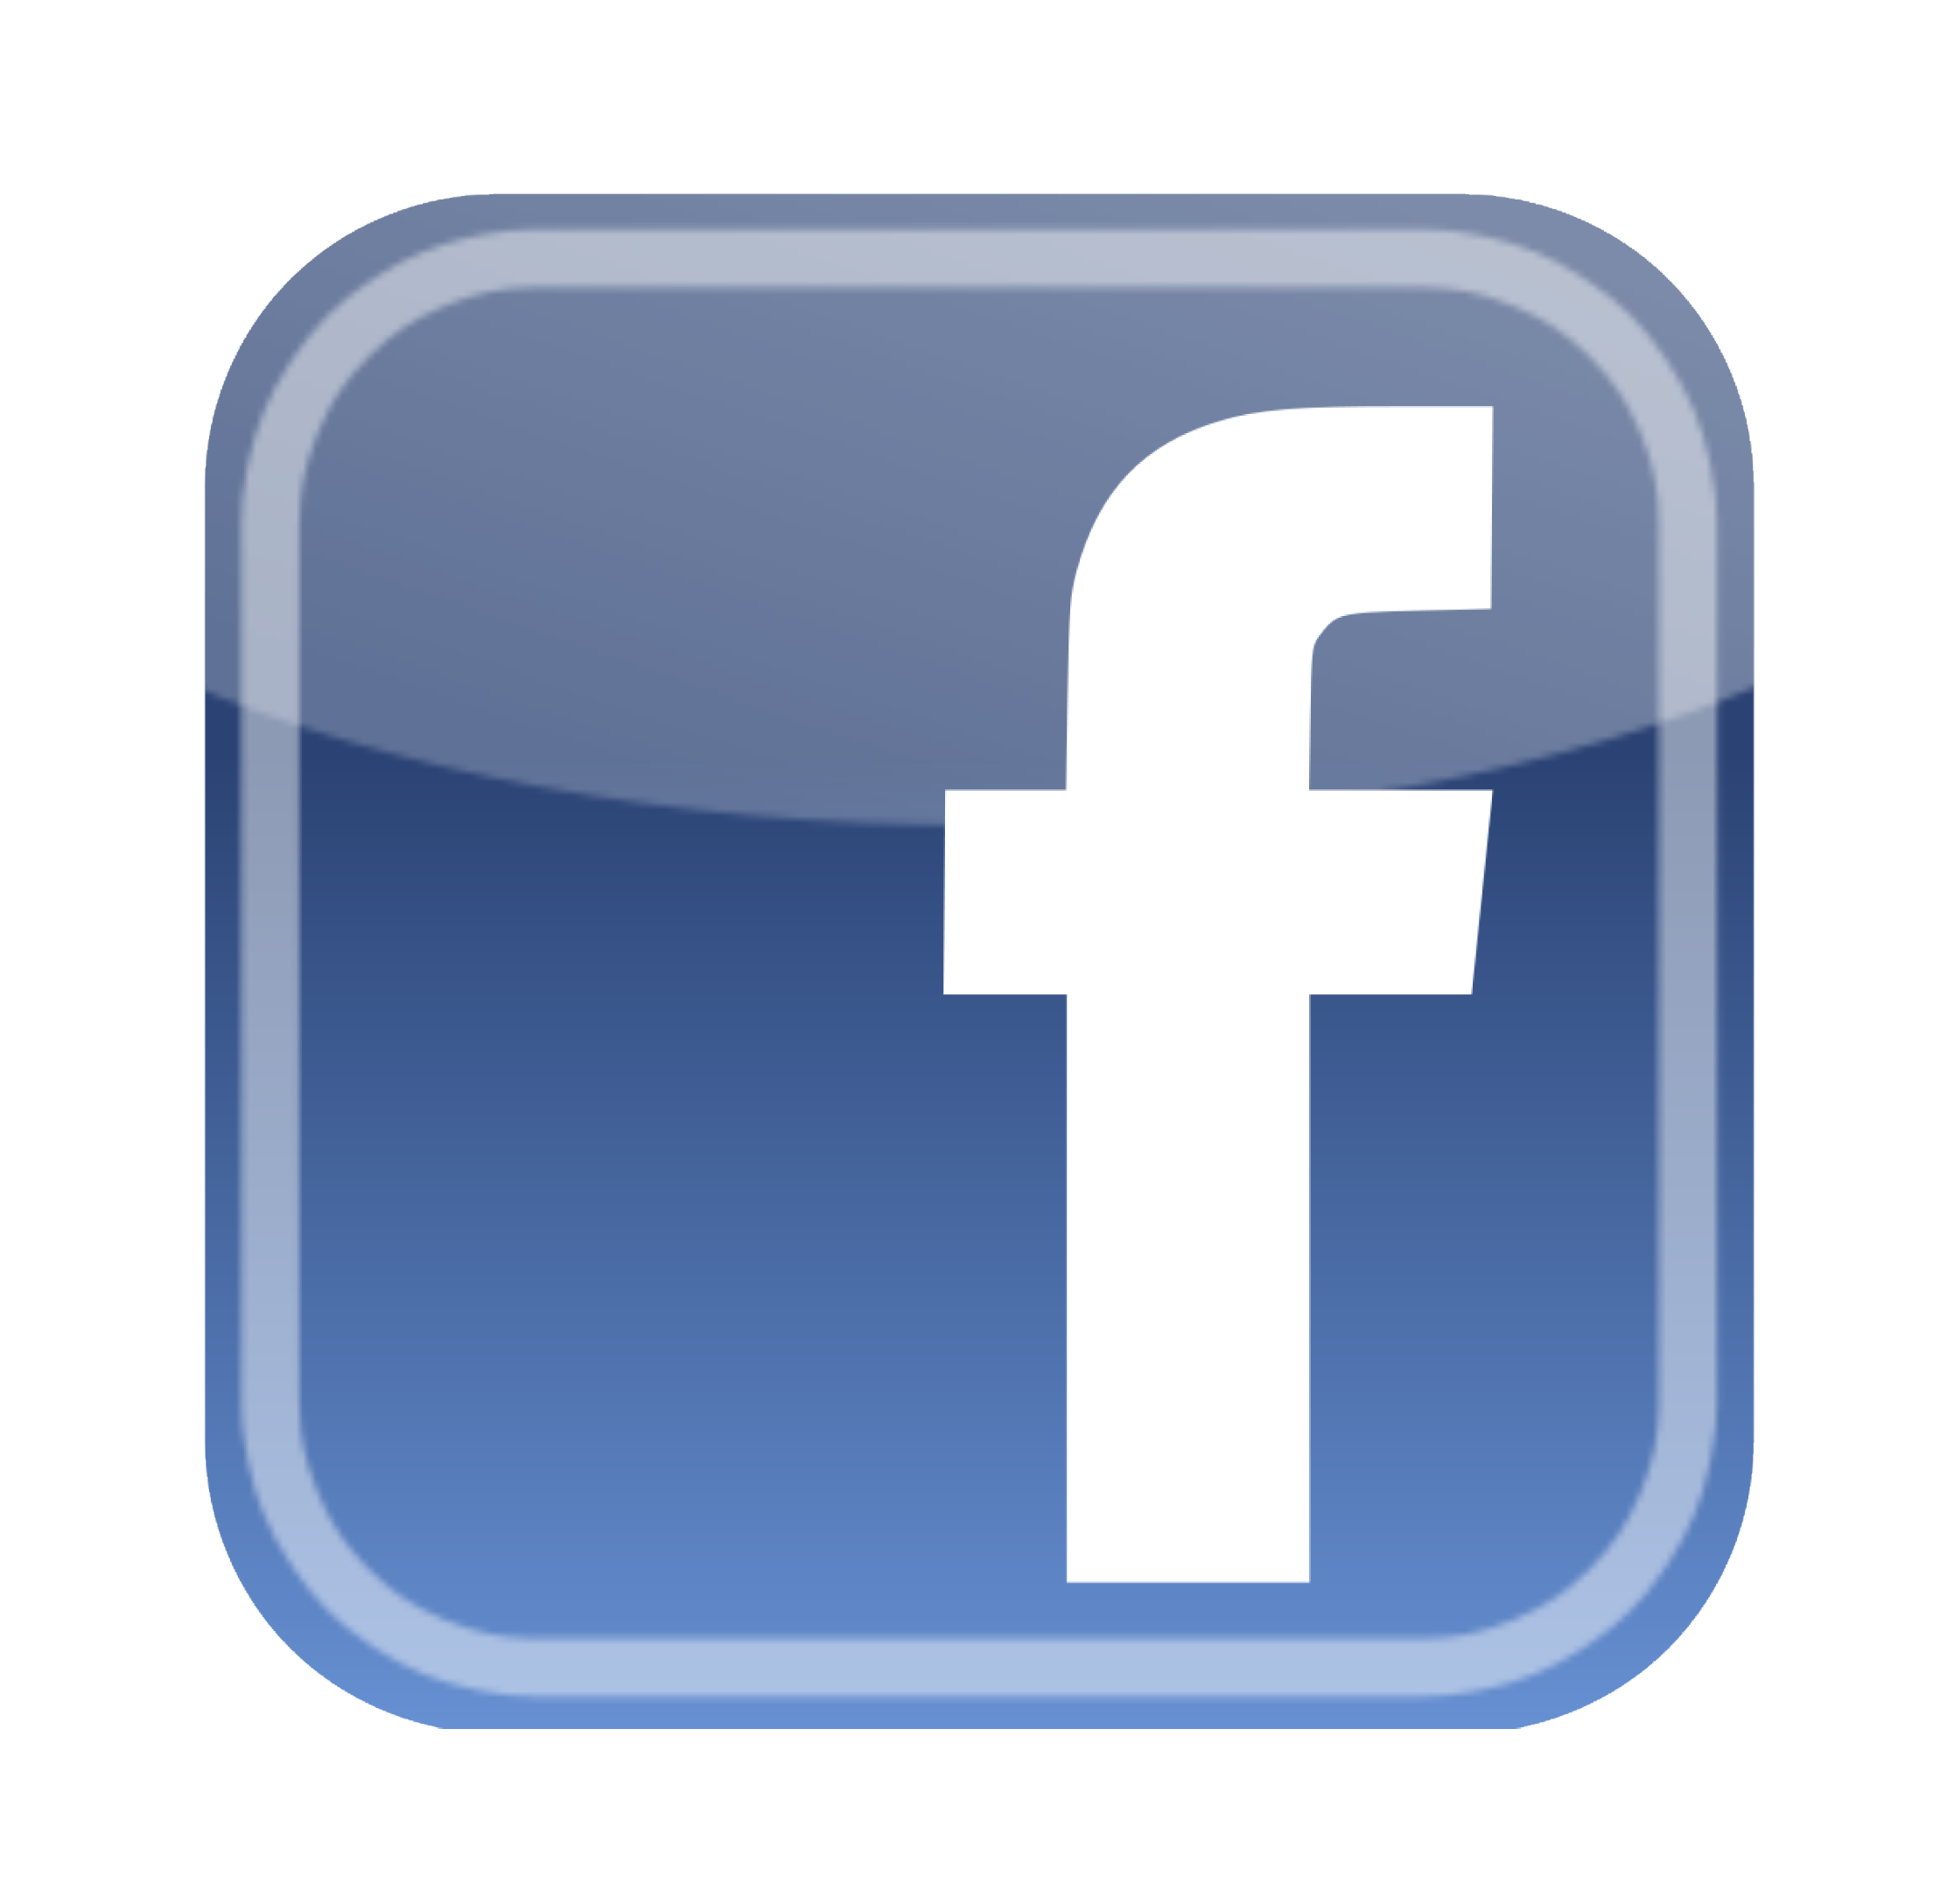 Facebook logo with link to store facebook page